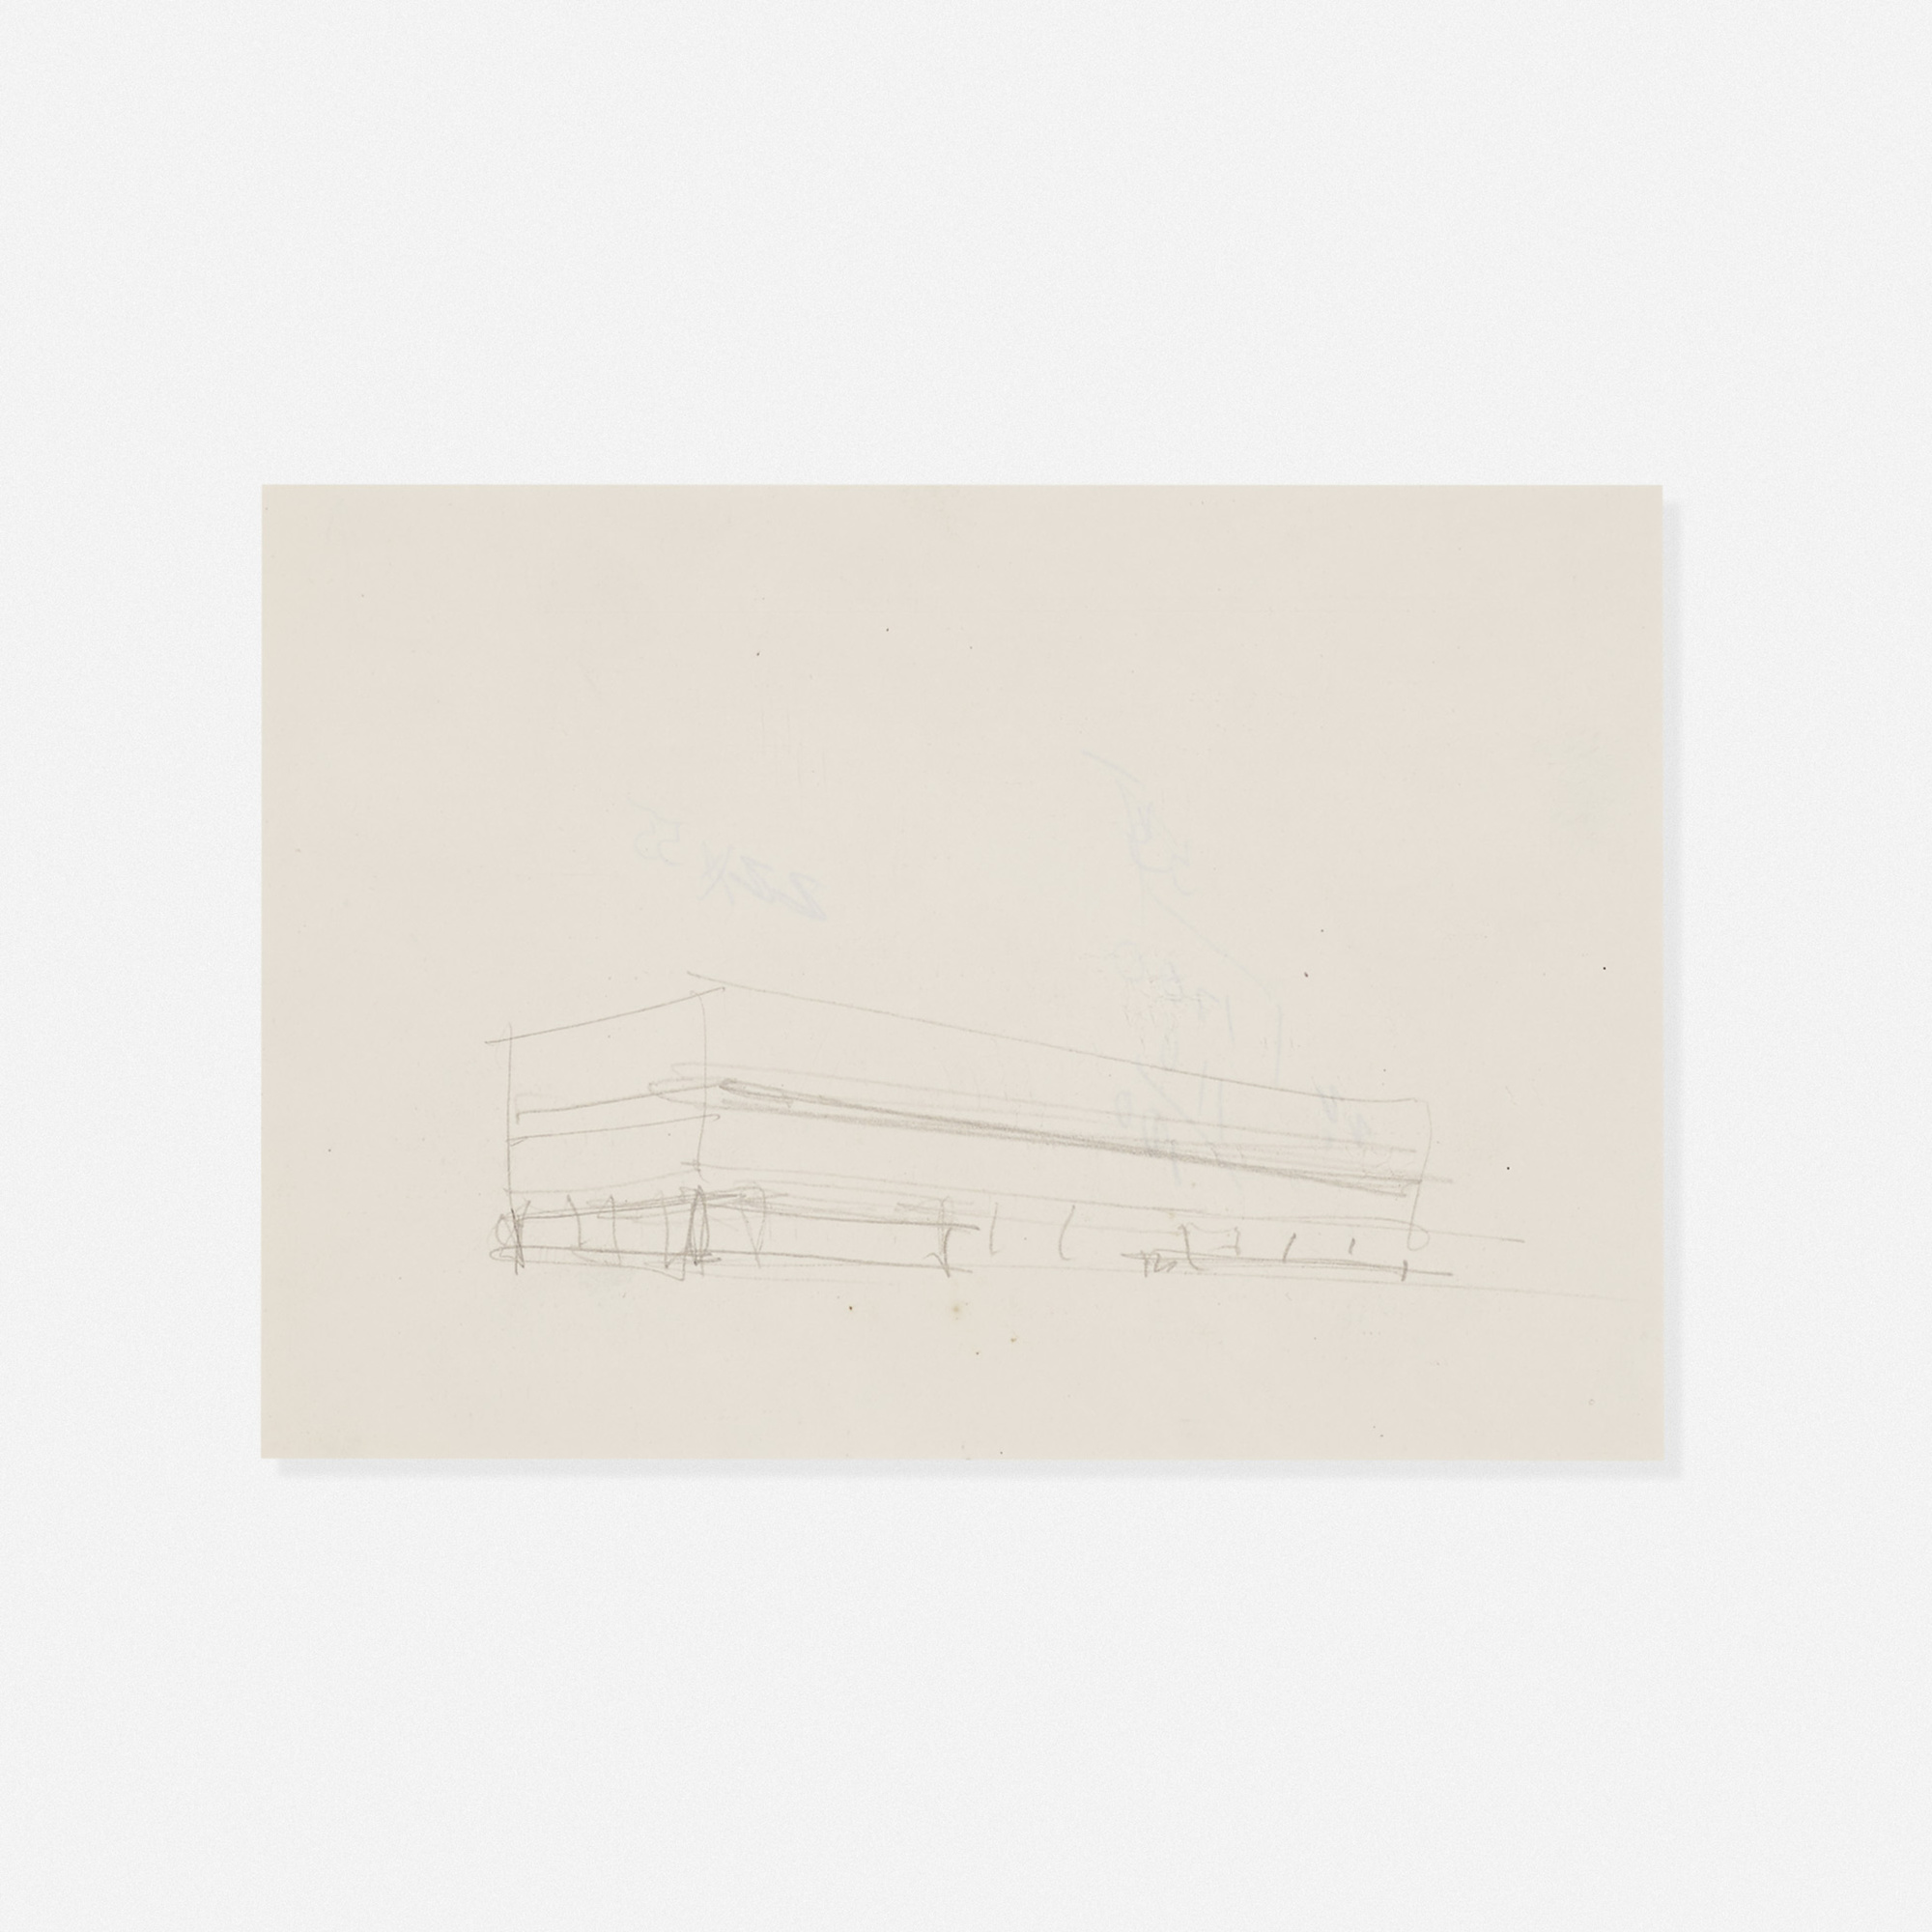 234: Ludwig Mies van der Rohe / exterior sketch for the Illinois Institute of Technology (1 of 1)